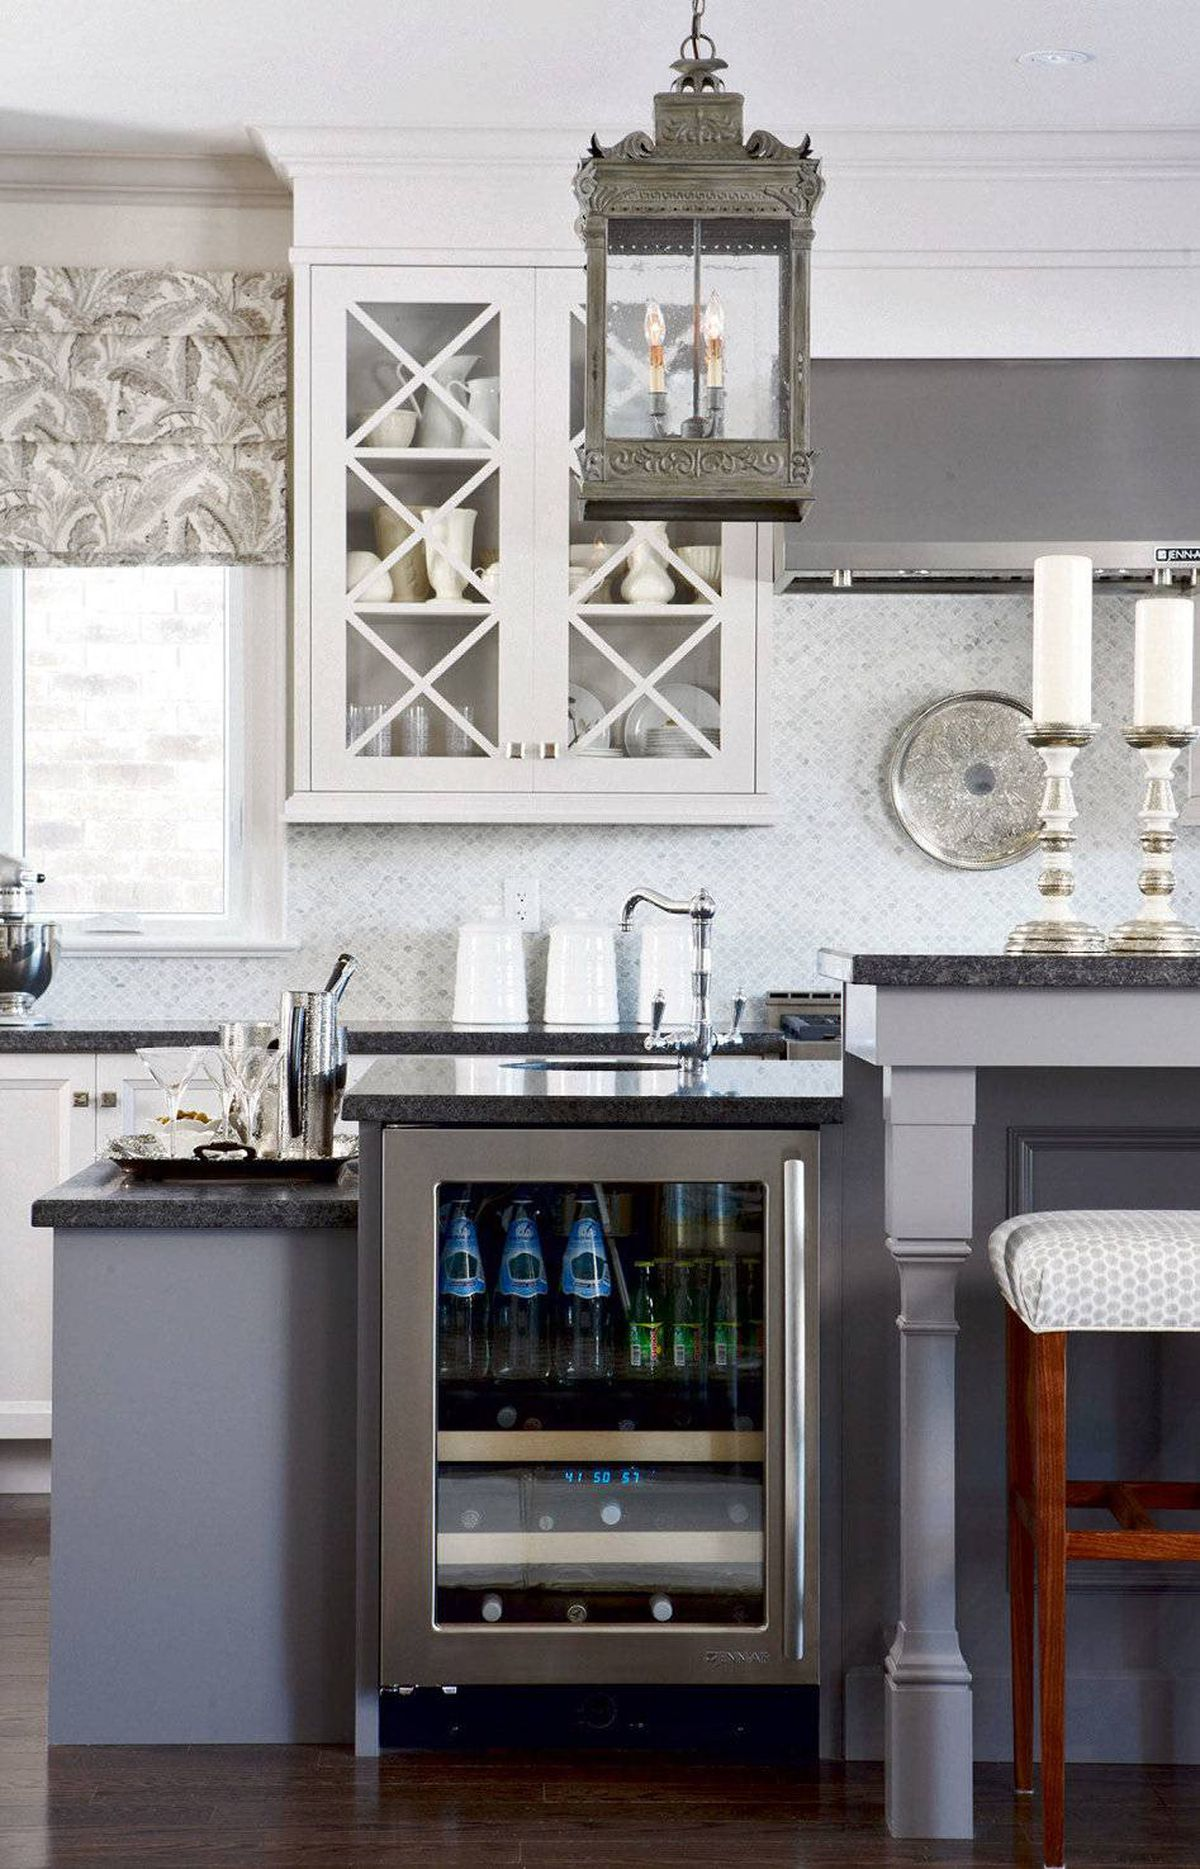 ESCHEW WHITE While white is classic, cheery and bright, it can also be stark and clinical, so why not try a cooler shade? Here, two distinctly smoky greys create a looser, more flexible vibe, easily transforming the kitchen from lunch counter to wine bar depending on the hour of day.